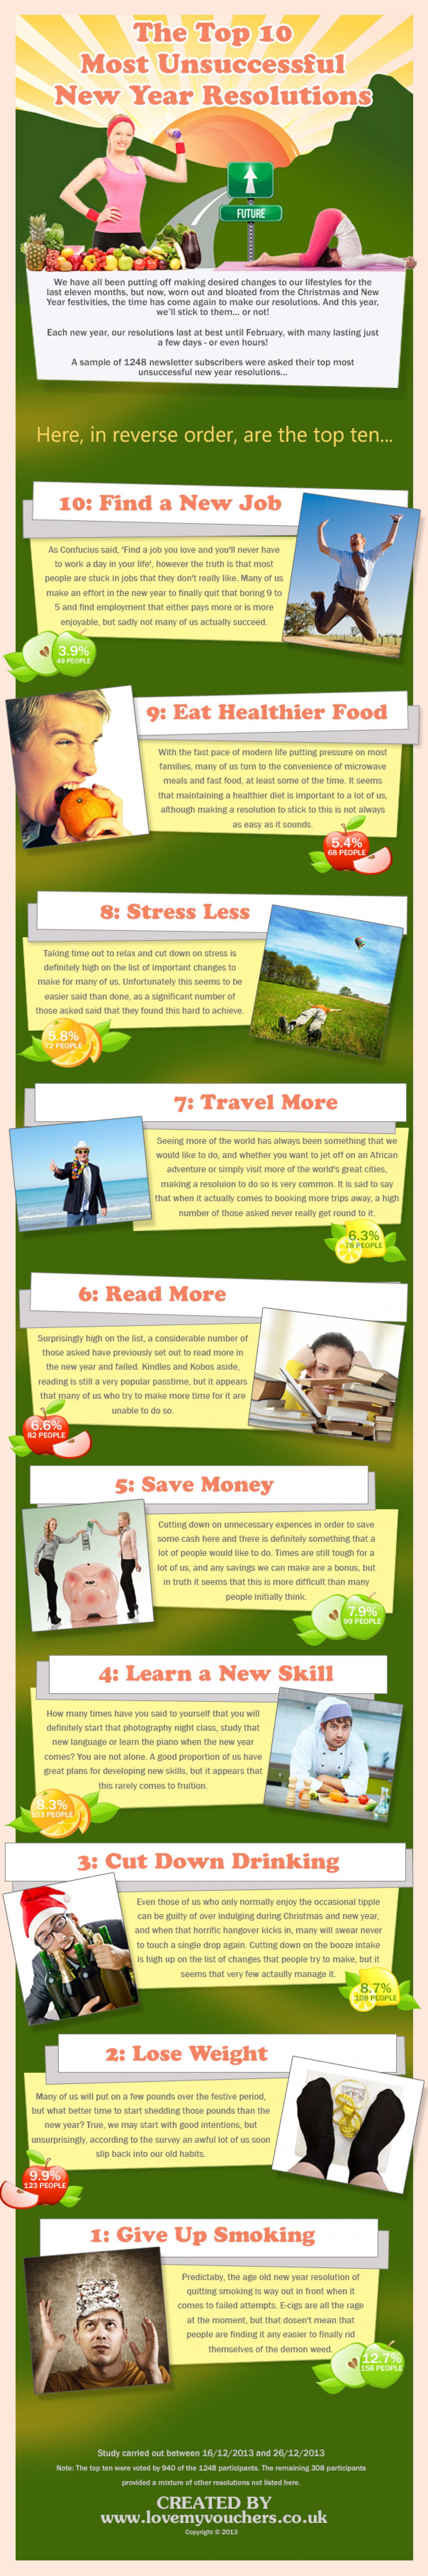 The Top Most Unsuccessful New Year's Resolutions Infographic